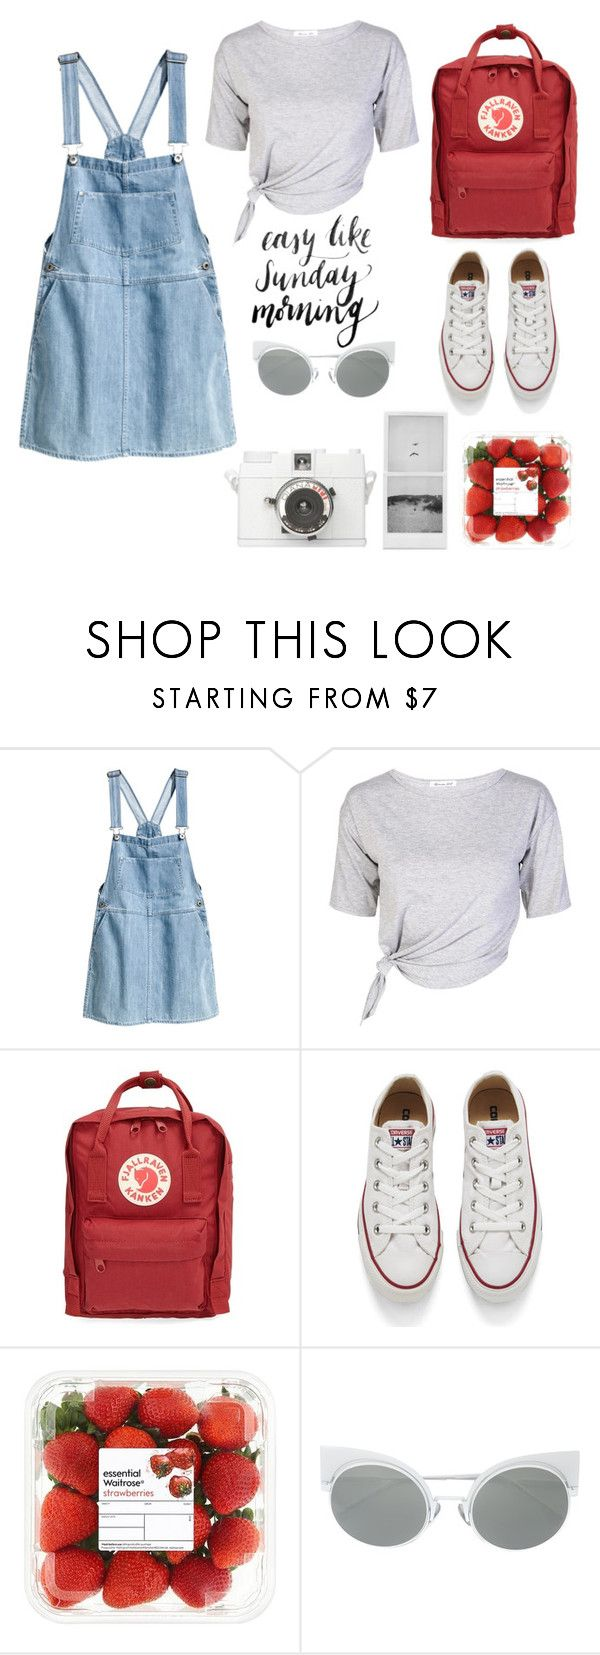 """Untitled #19"" by darya-andreea ❤ liked on Polyvore featuring H&M, Fjällräven, Converse and Lomography"